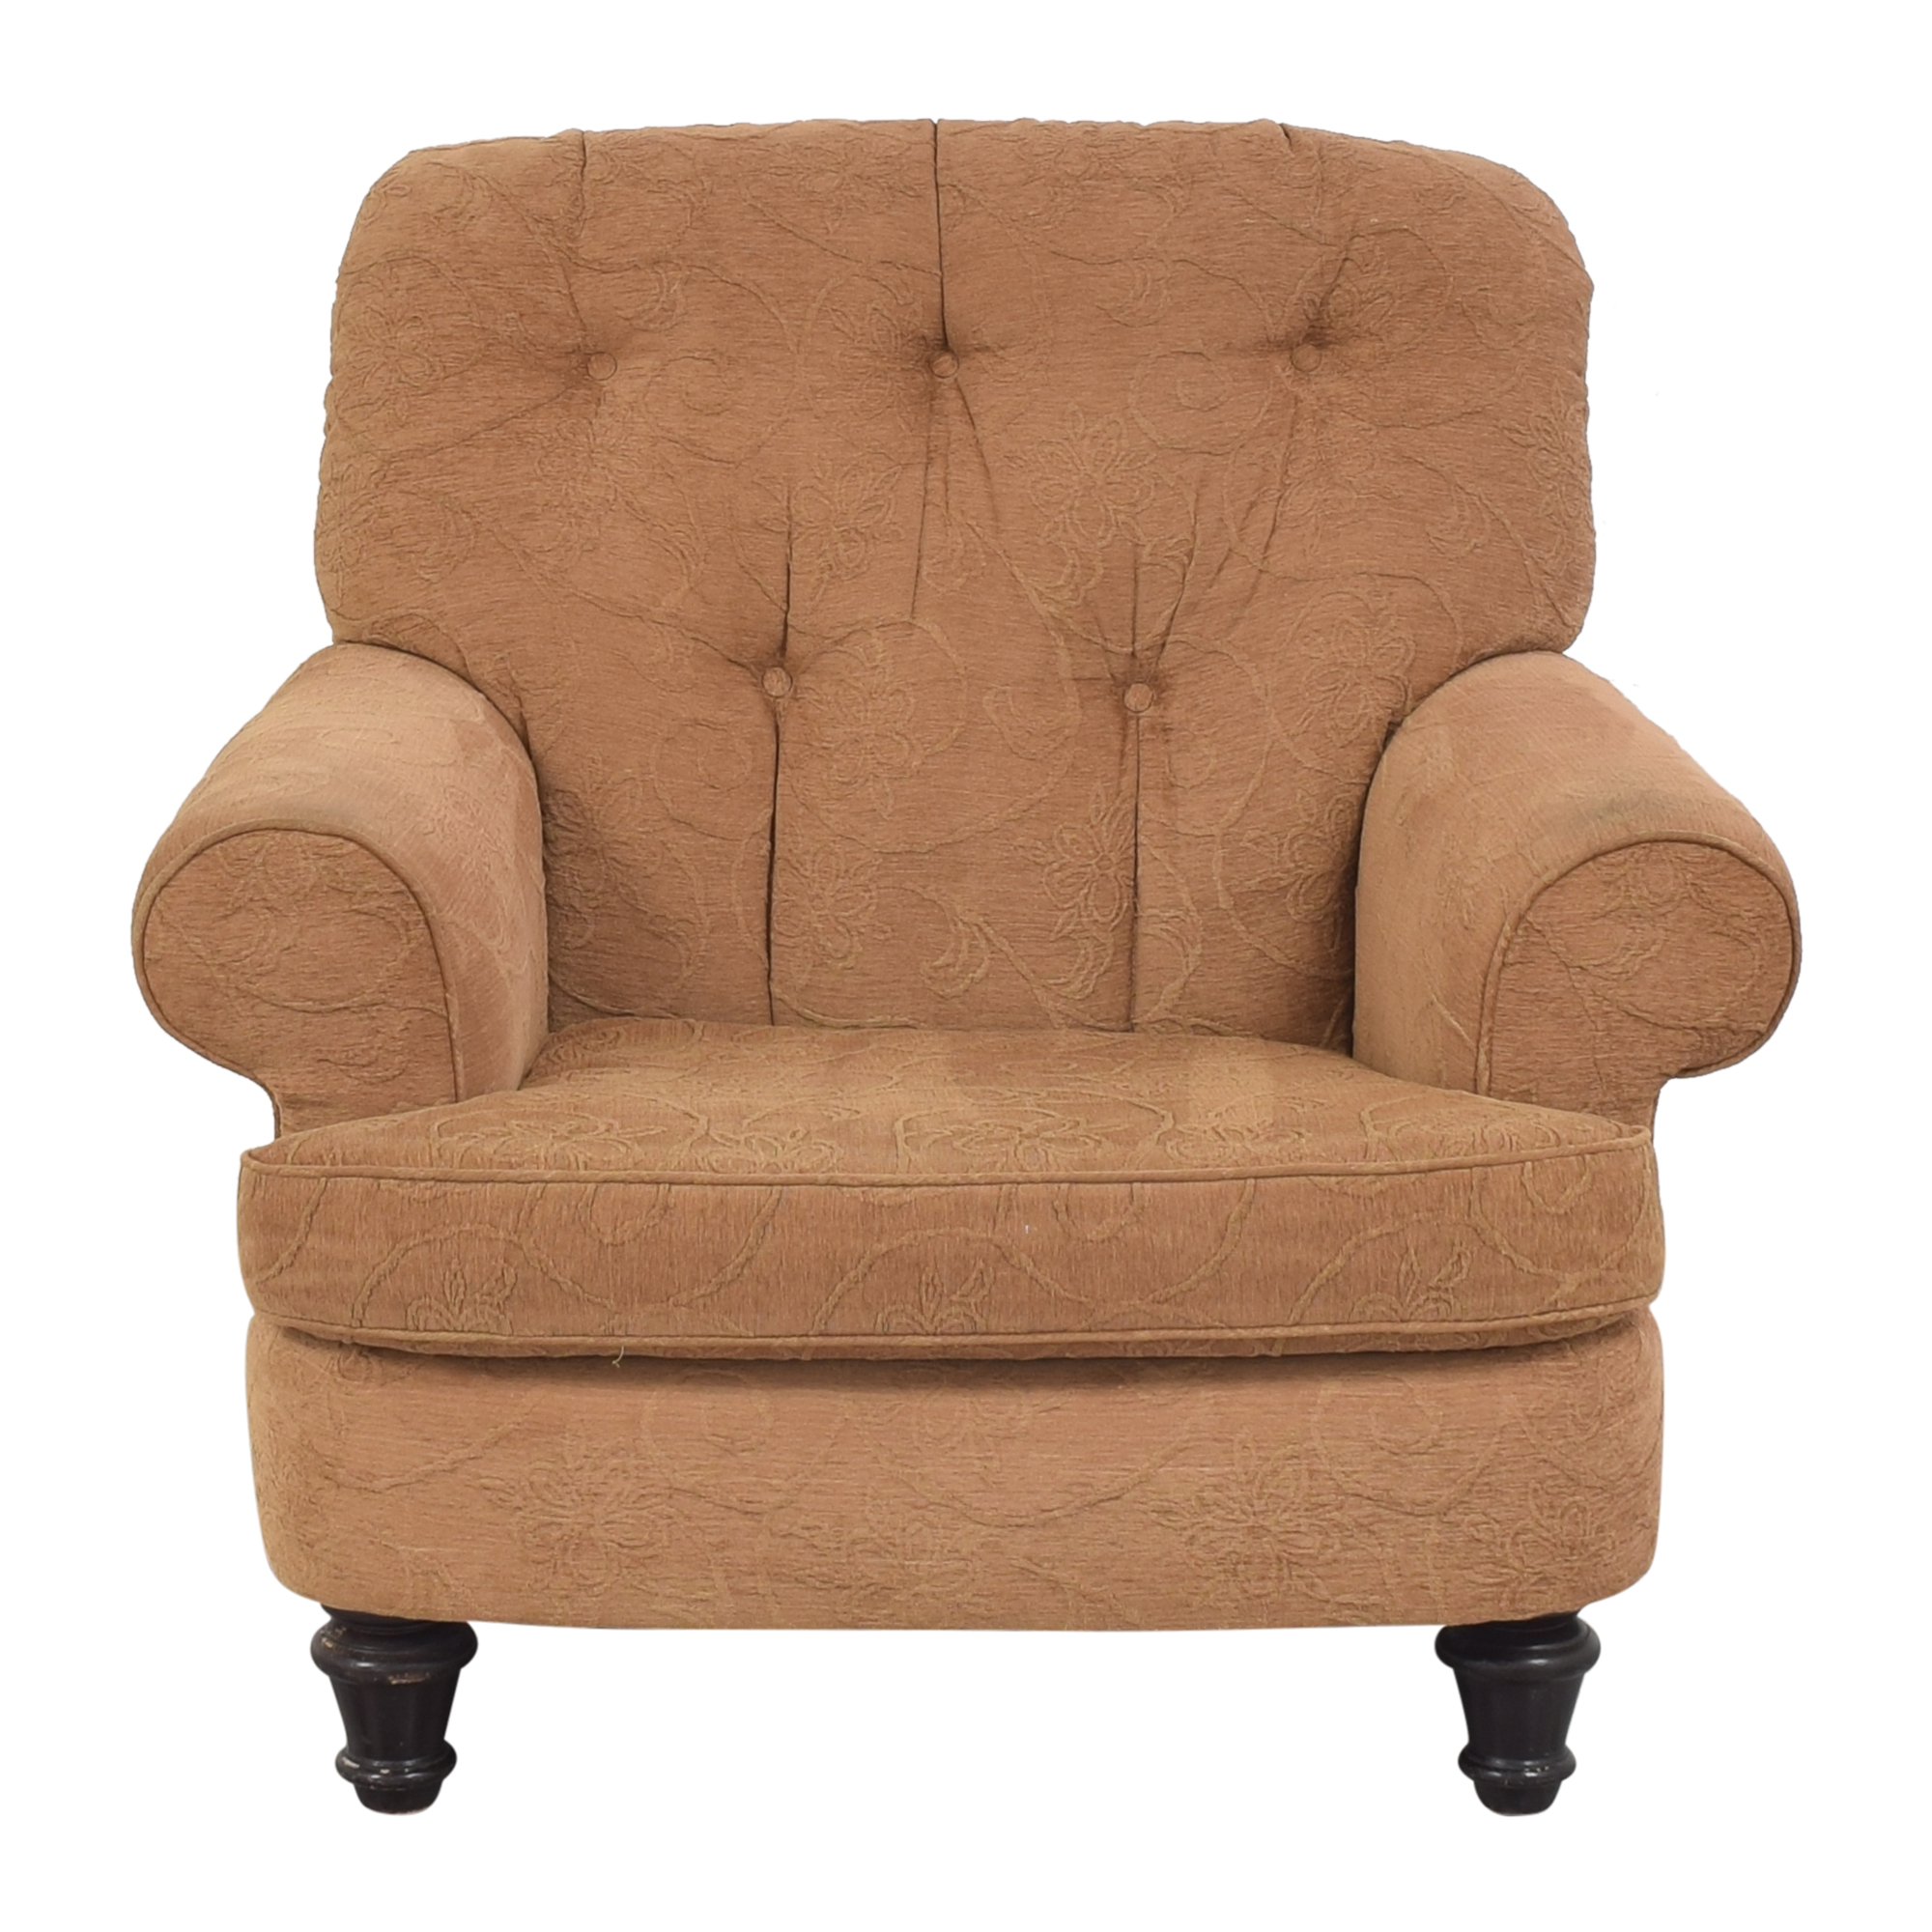 Oversized Roll Arm Accent Chair coupon